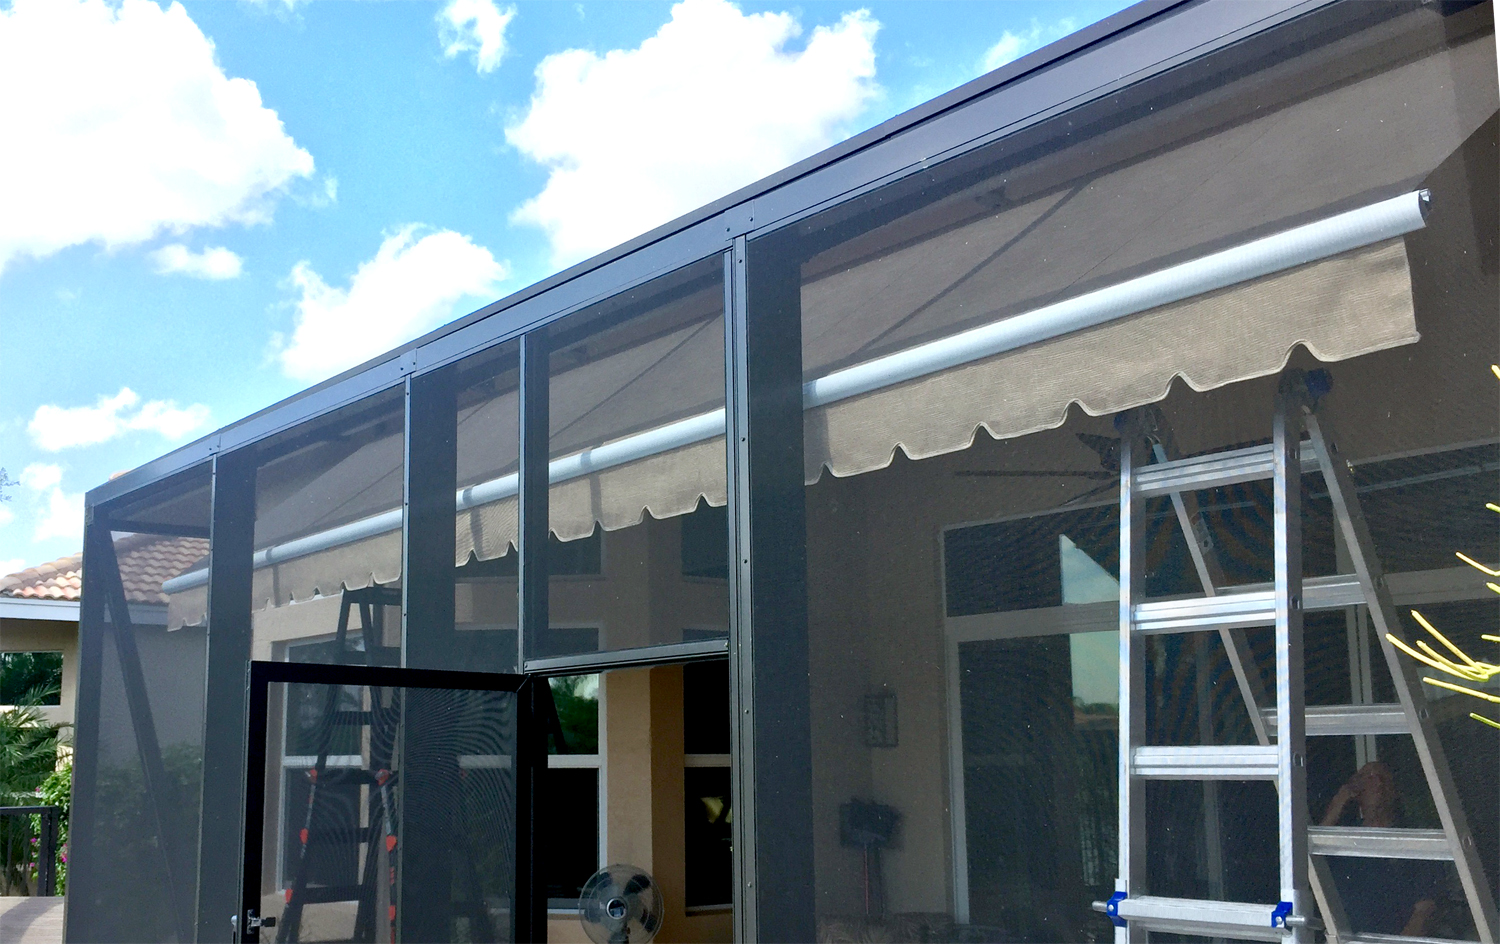 21' x 5' Soffit Mount in Screened in Patio